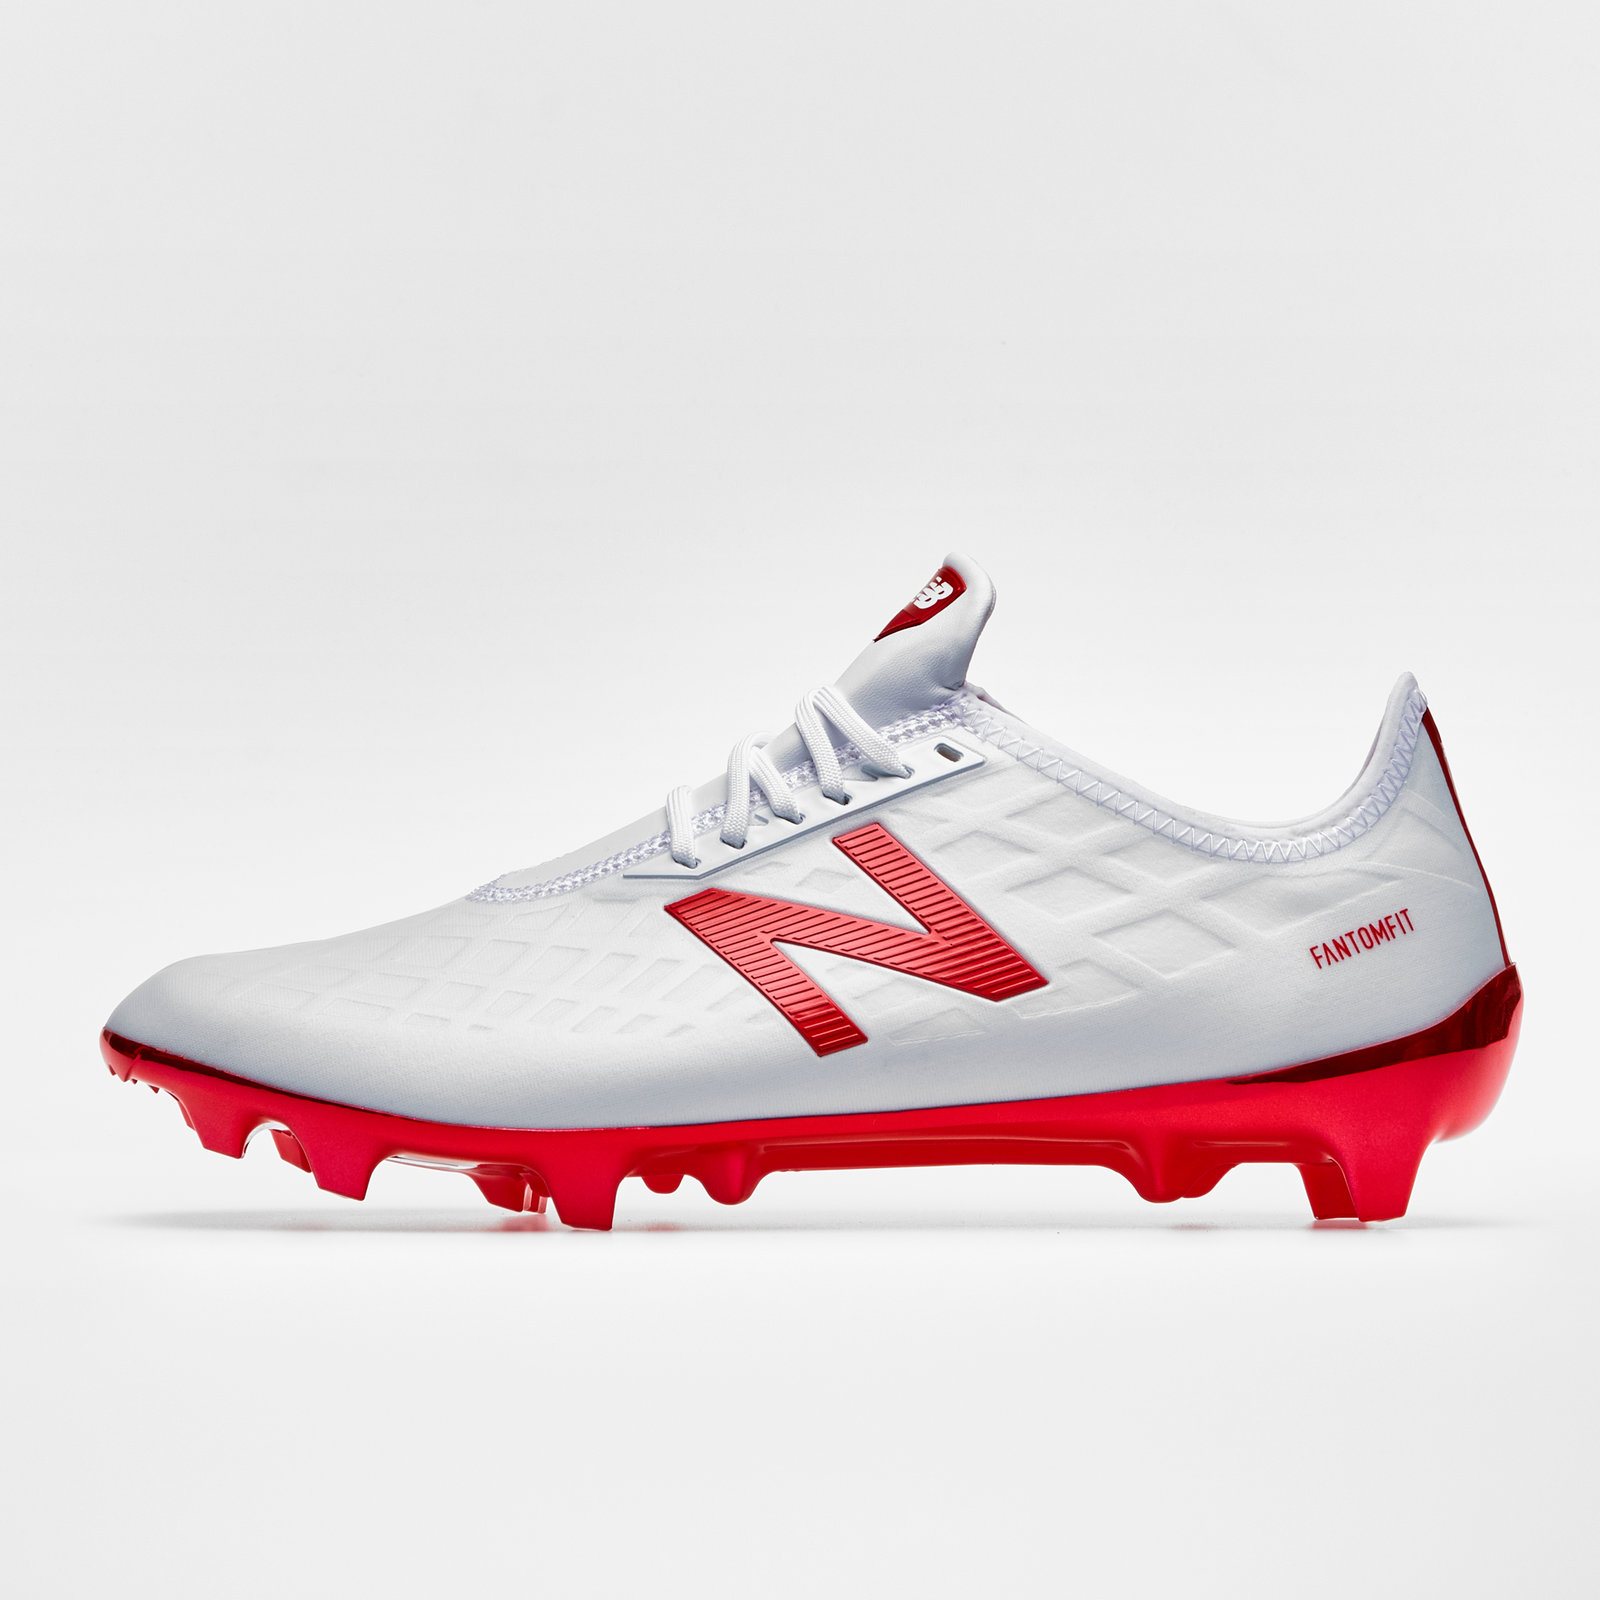 192295c3f3371 New Balance Mens Furon 4.0 Pro Firm Ground World Cup Football Boots Trainers